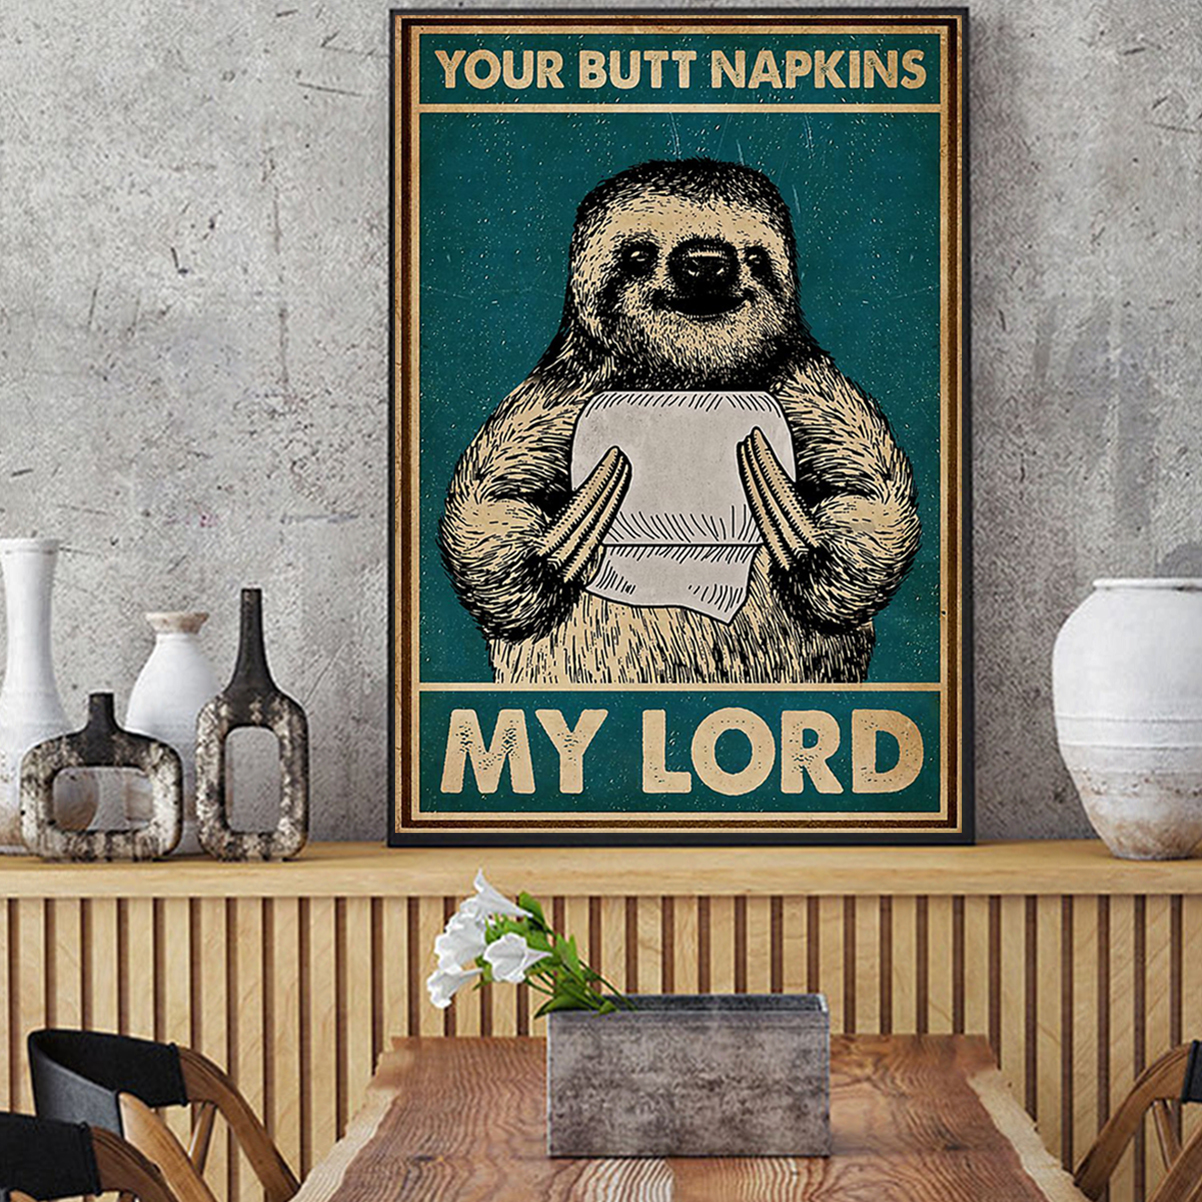 Sloth your butt napkins my lord poster A1